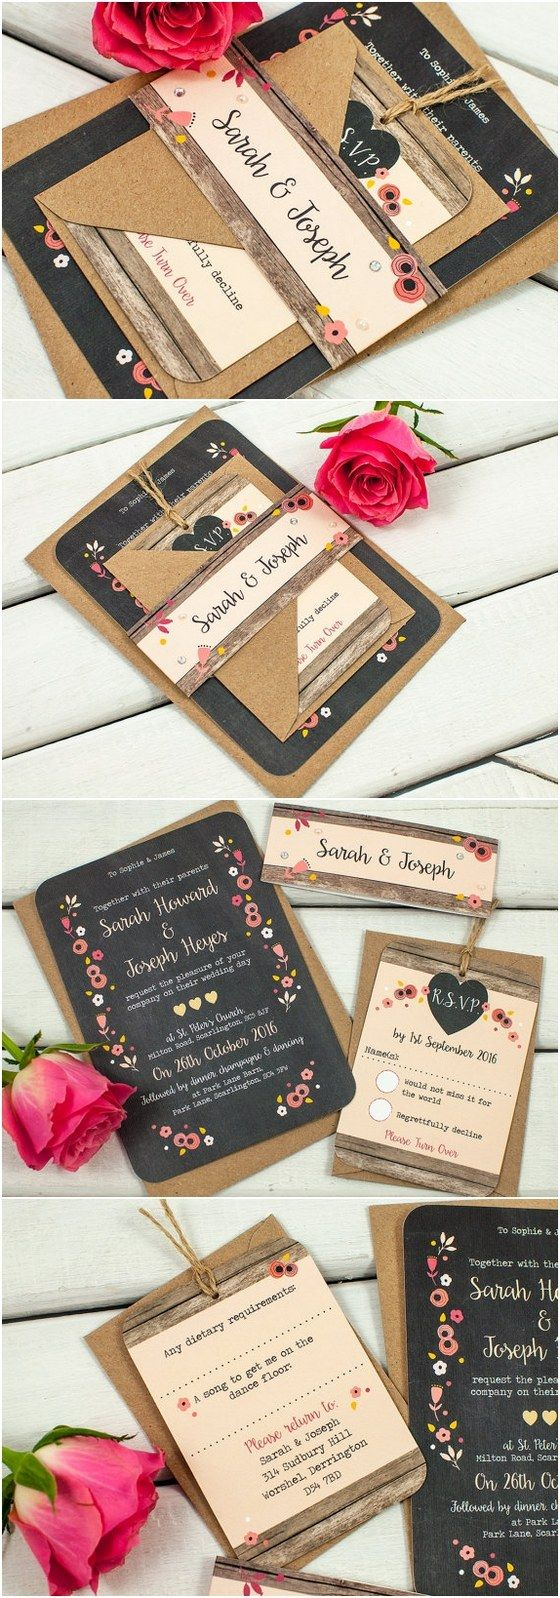 wedding invitation email free%0A Berry Floral Chalkboard wedding invitation bundle  Fall Autumn Wedding